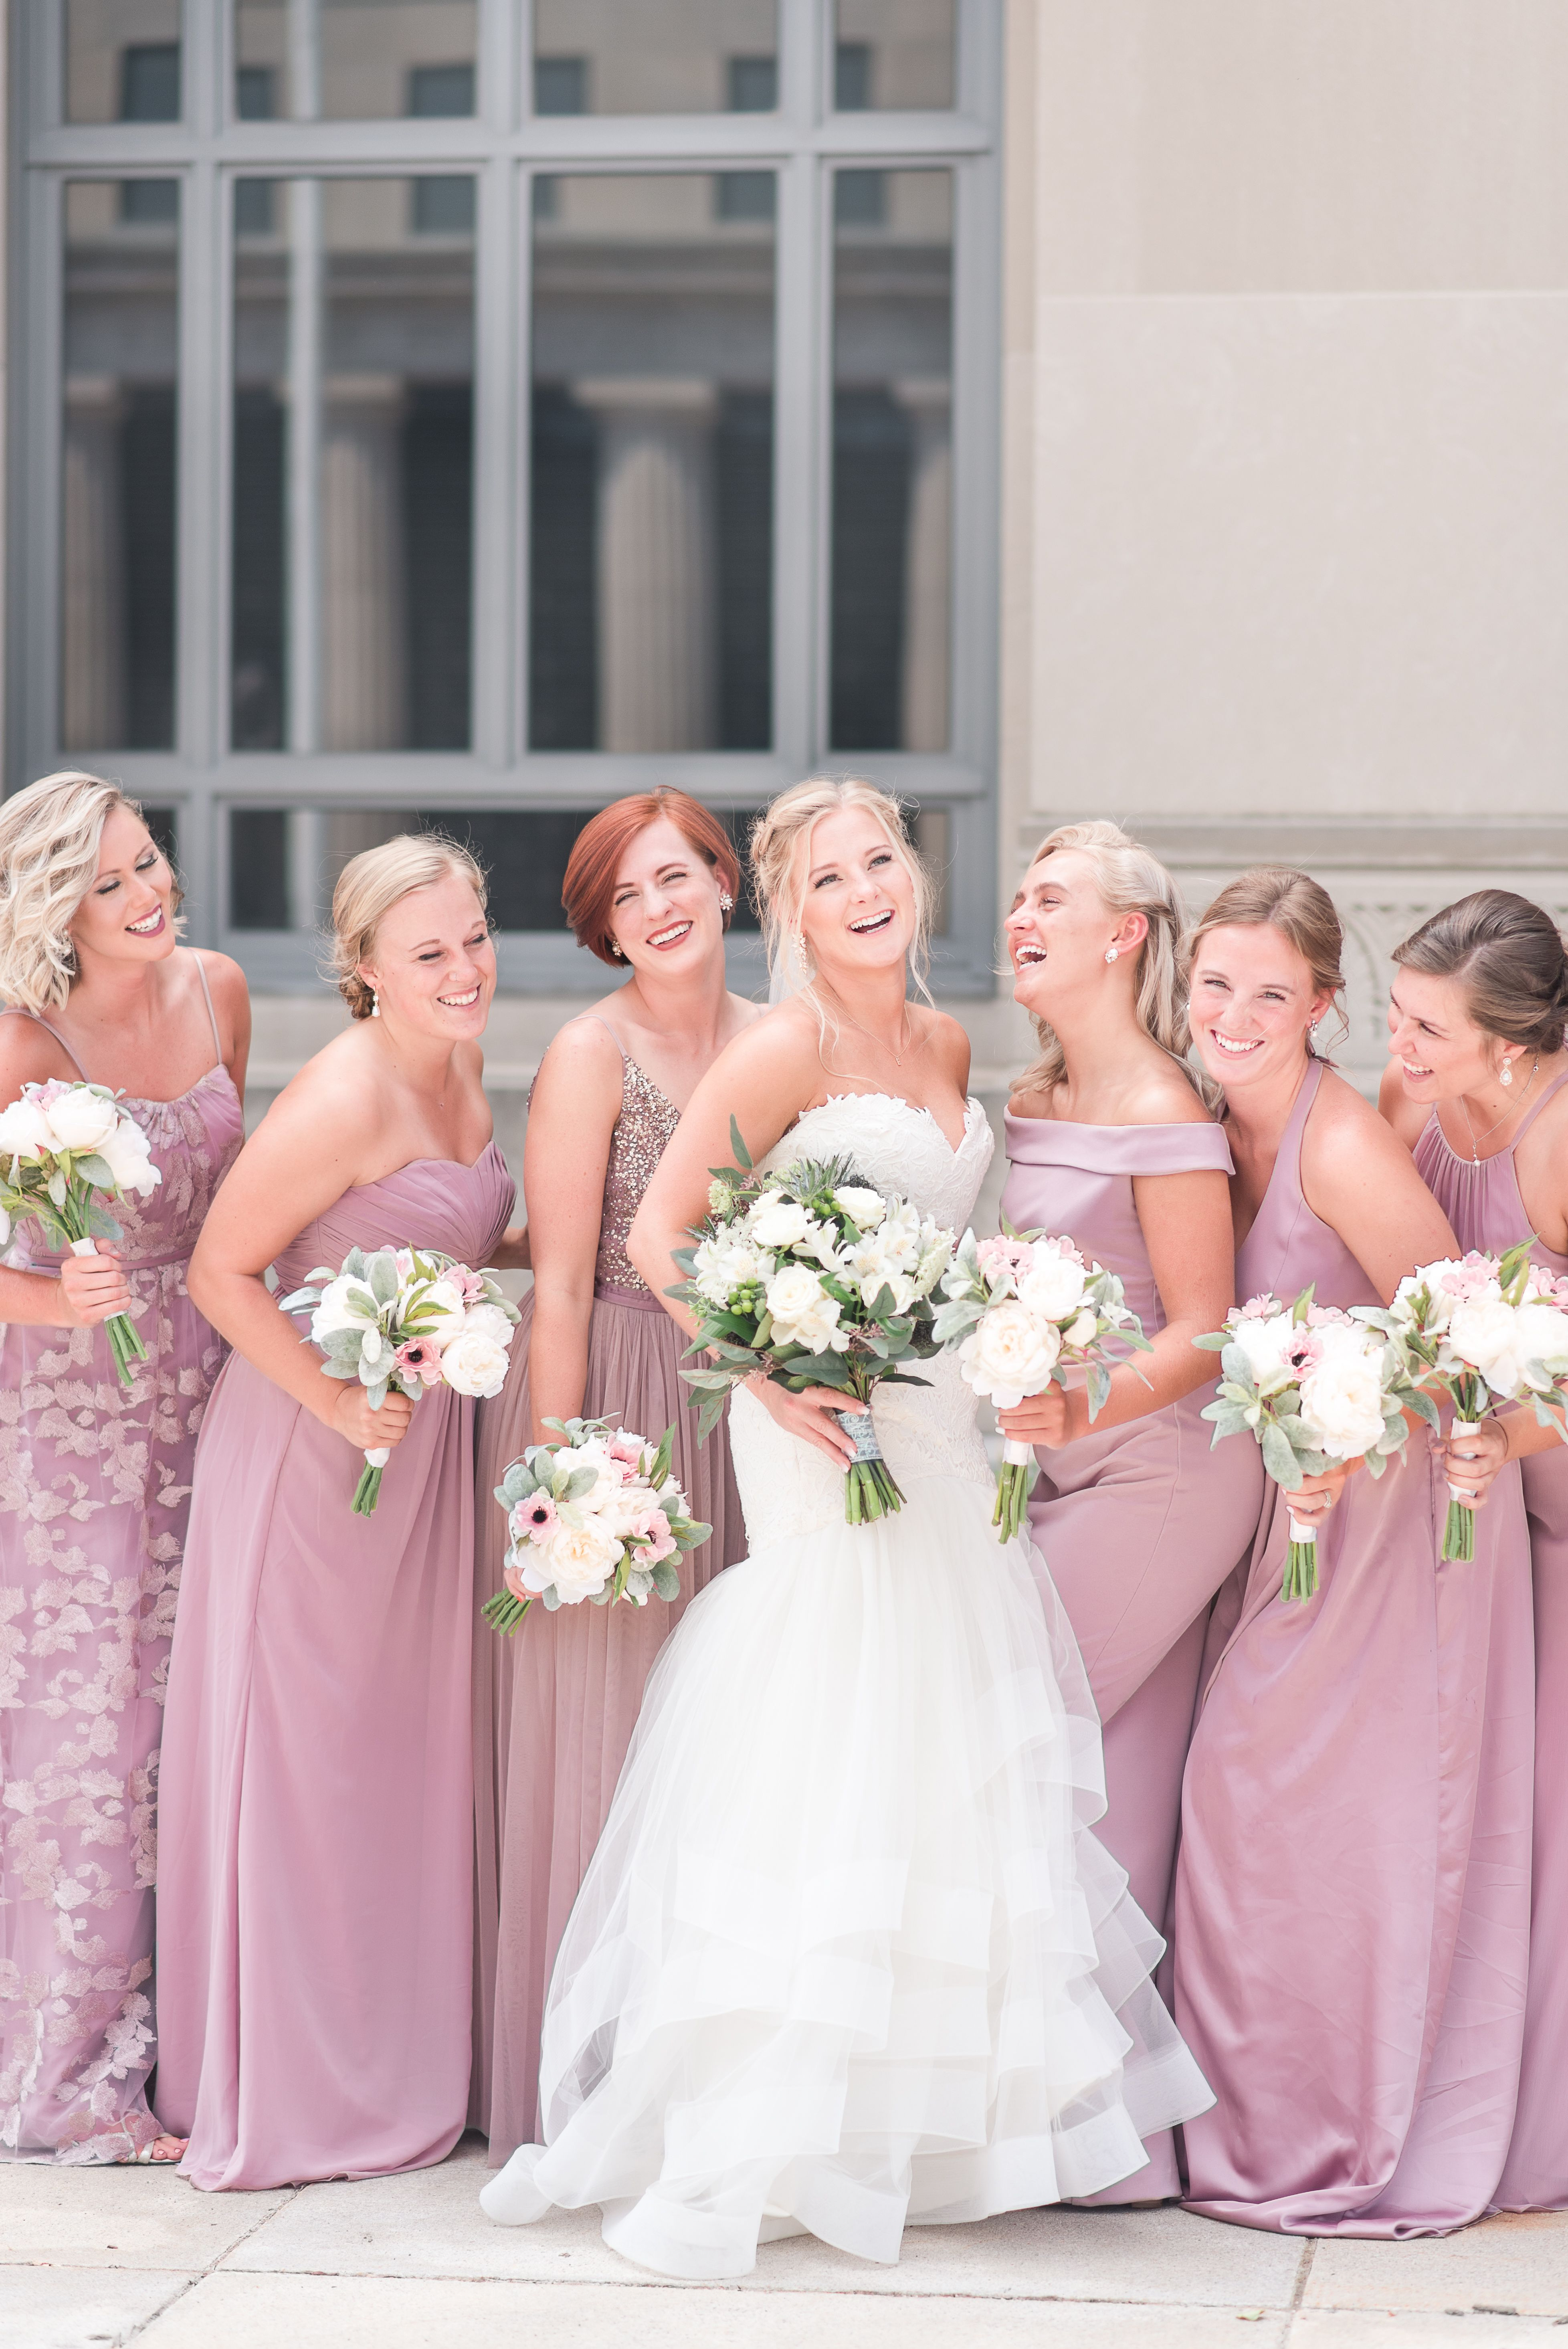 Church Wedding Gold Bridesmaids Dresses Summer Wedding Floral Large Bridal Wedding Photo Inspiration Wedding Photography Bridal Party Summer Wedding Floral